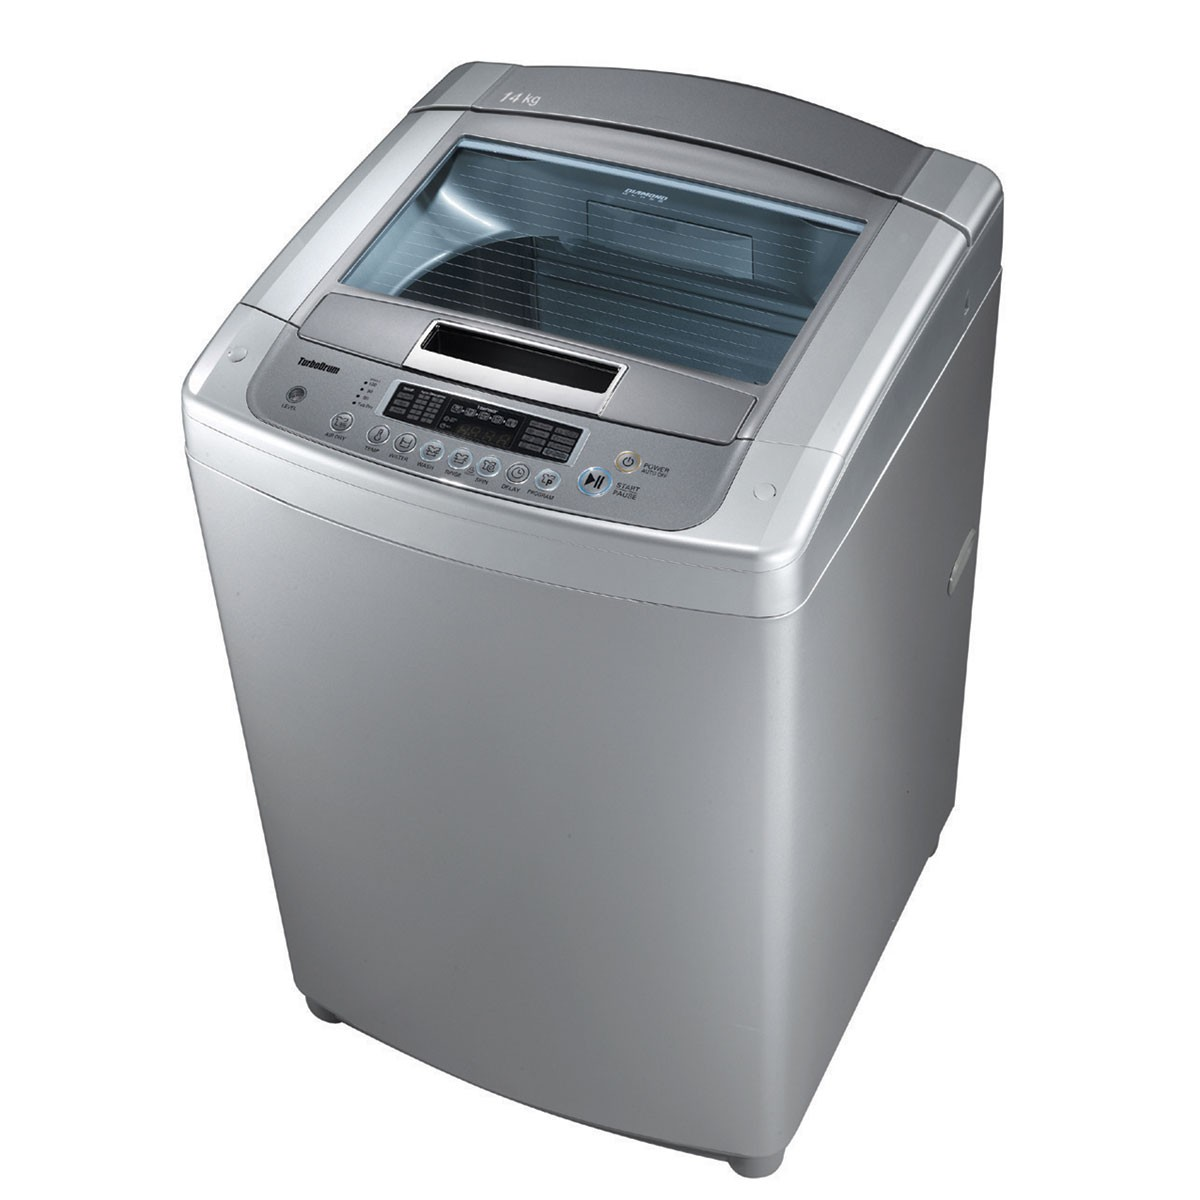 The best top load washer with agitator - Top Load Washer